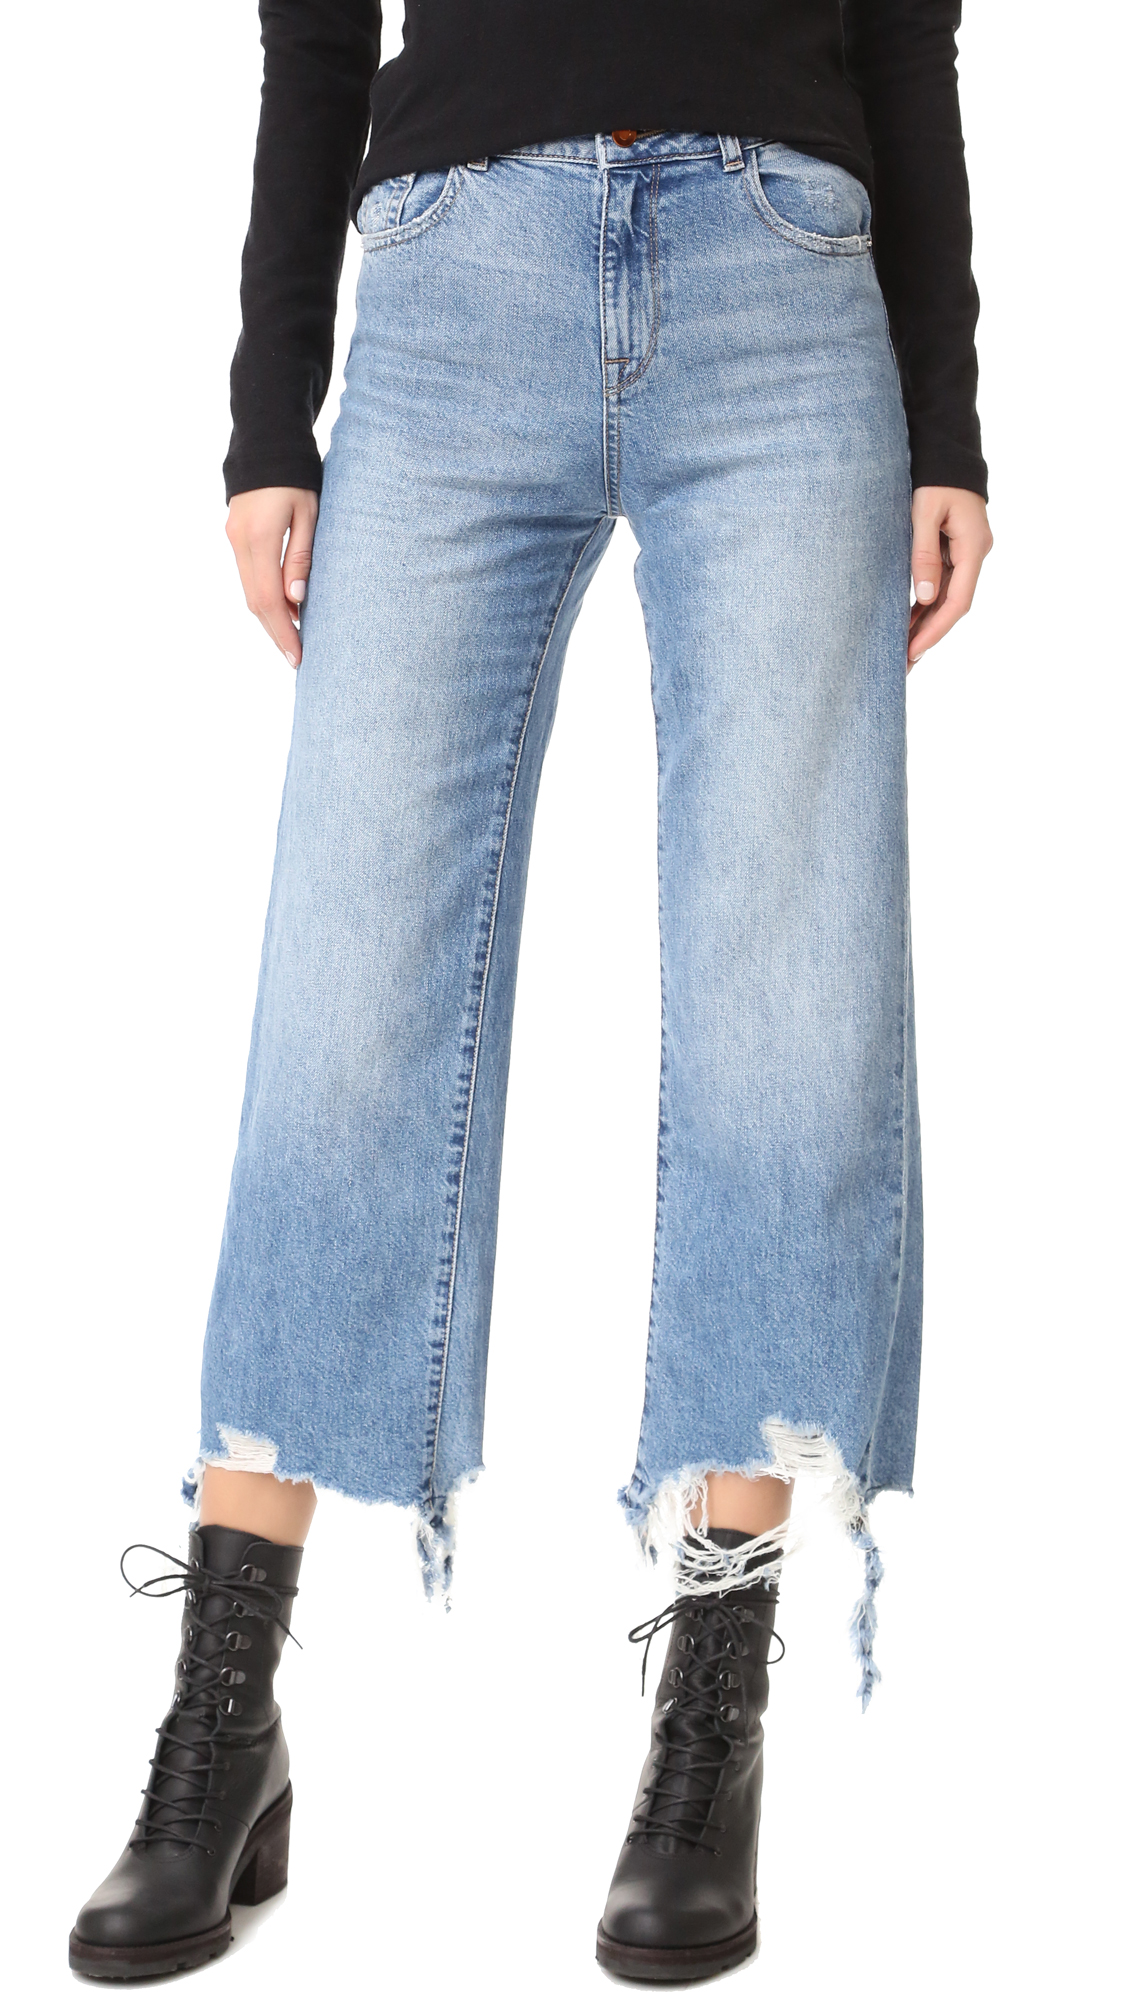 Soft, well worn DL1961 boyfriend jeans with a roomy, relaxed fit. Exaggerated shredding at the hems. 5 pocket styling. Button closure and zip fly. Fabric: Soft denim. 100% cotton. Wash cold. Made in the USA. Measurements Rise: 12.25in / 31